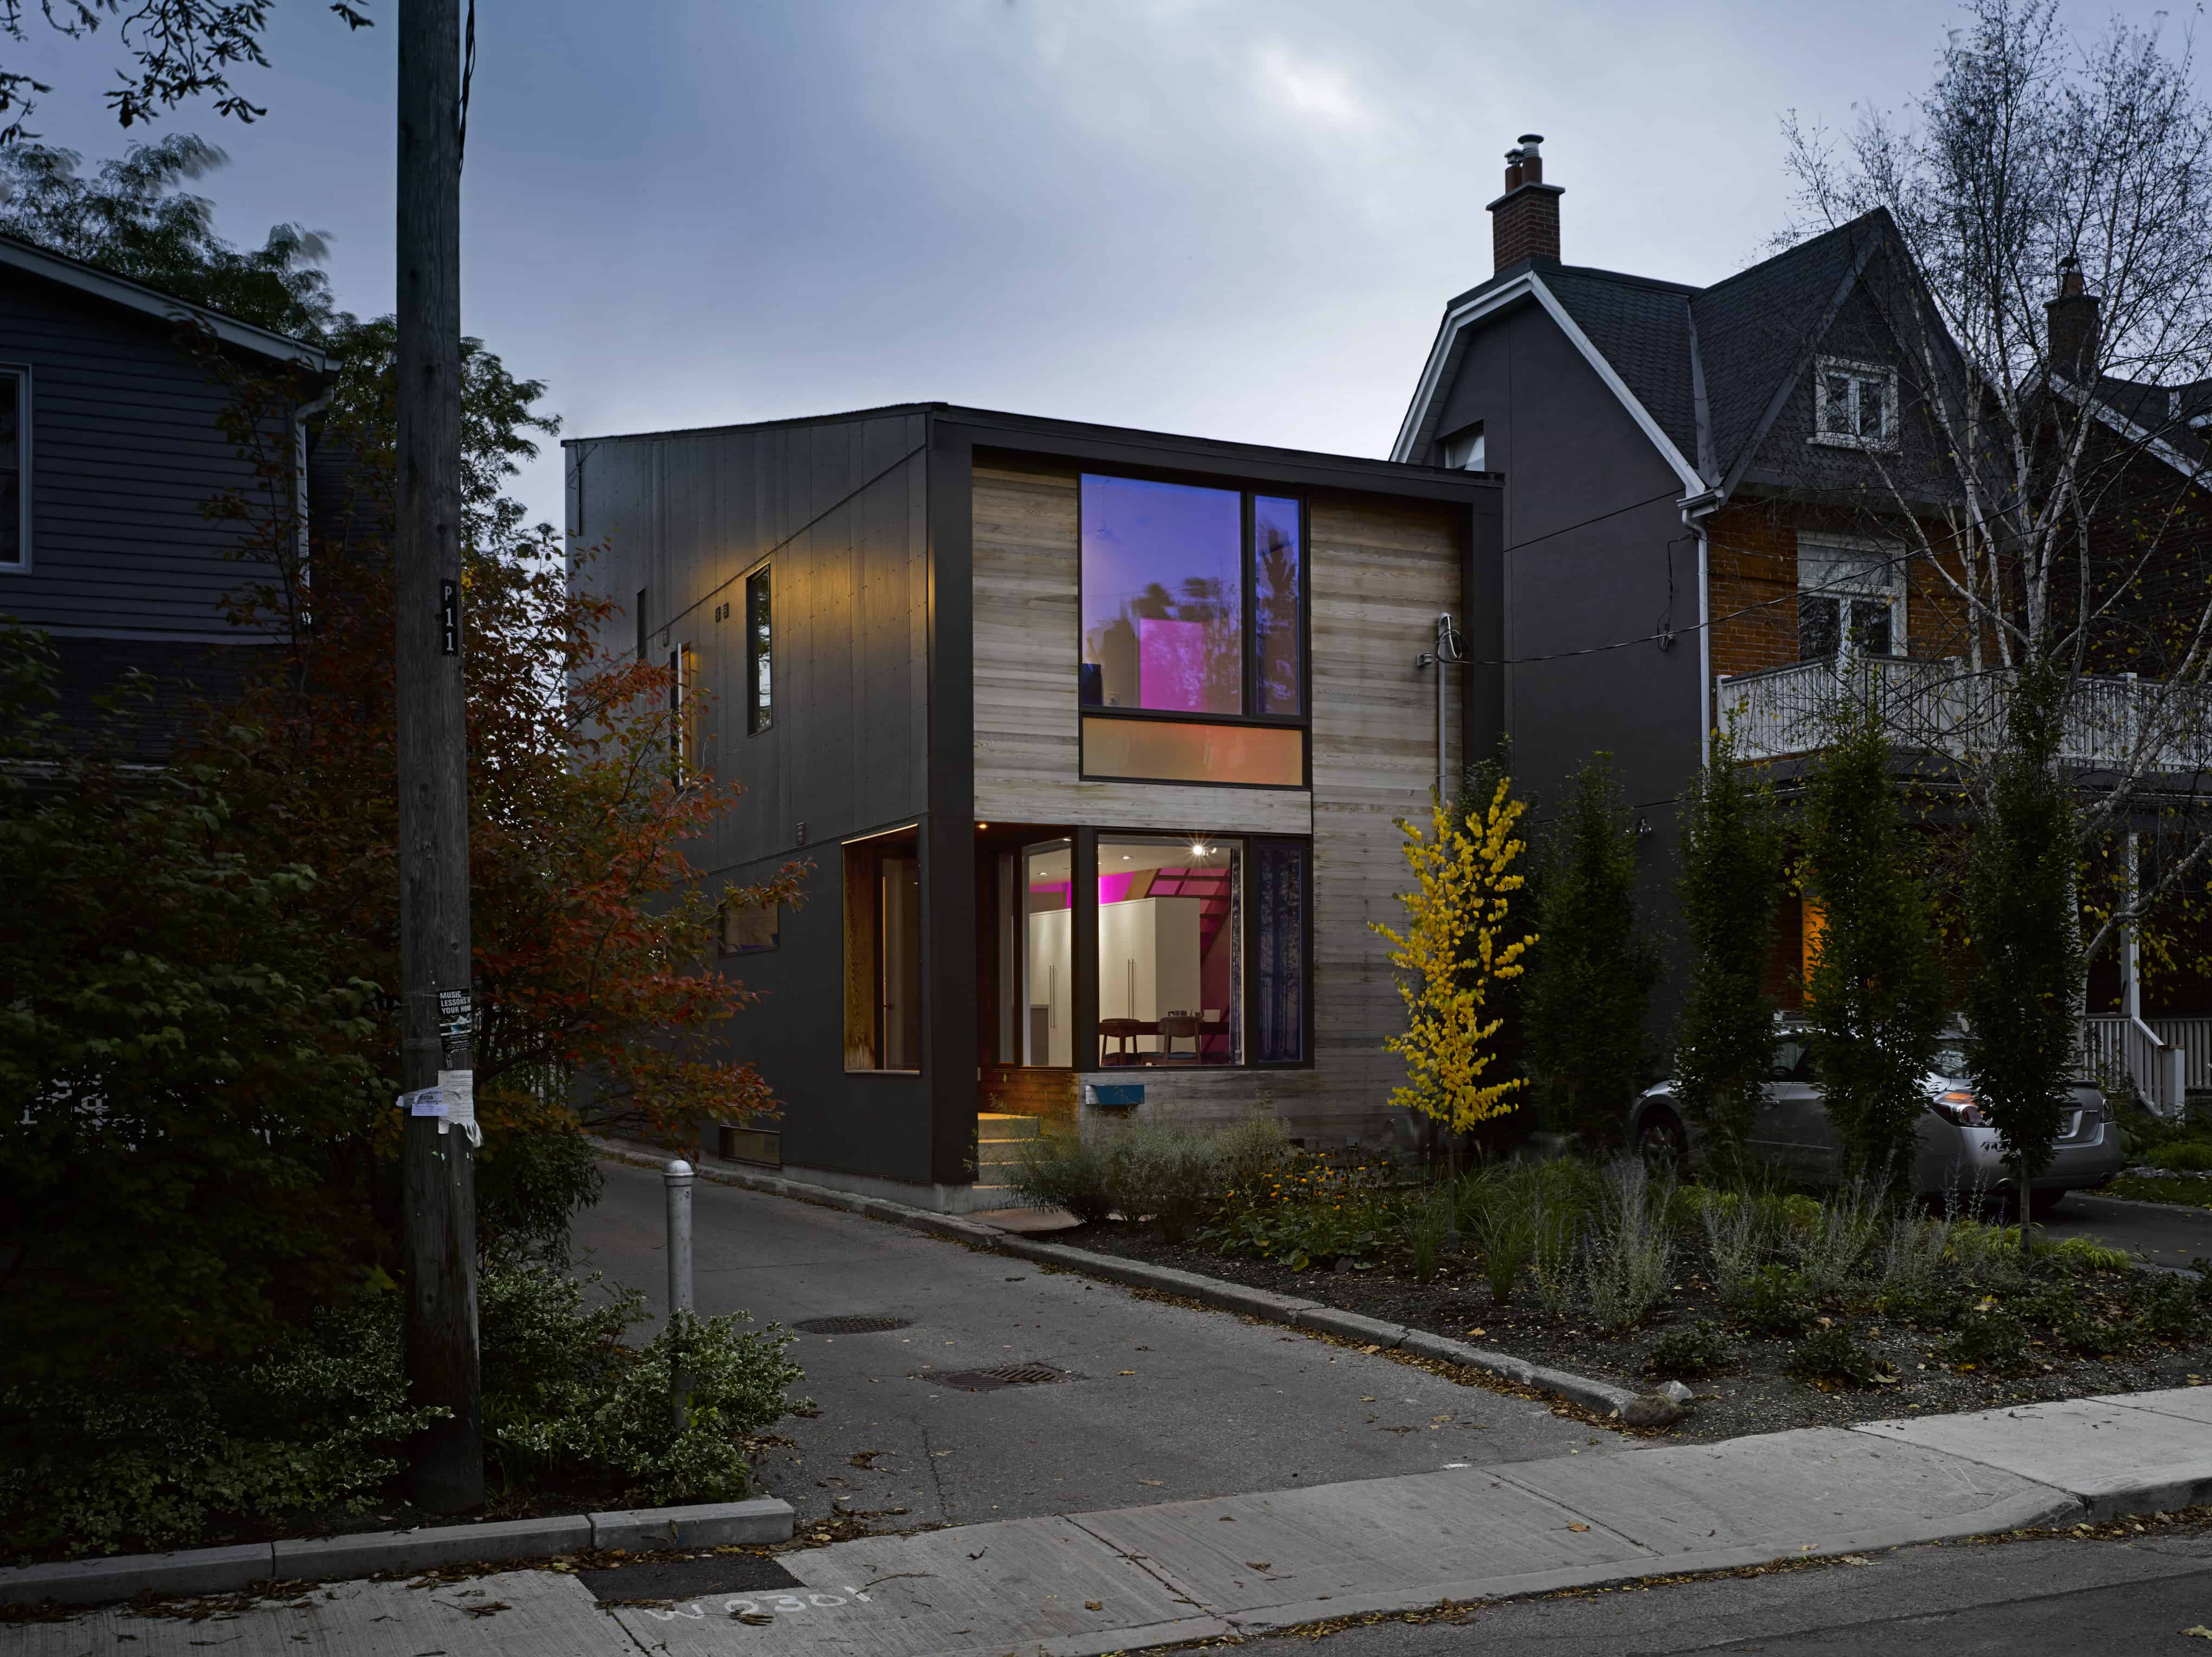 Modern house with a black exterior along with a small garden area.